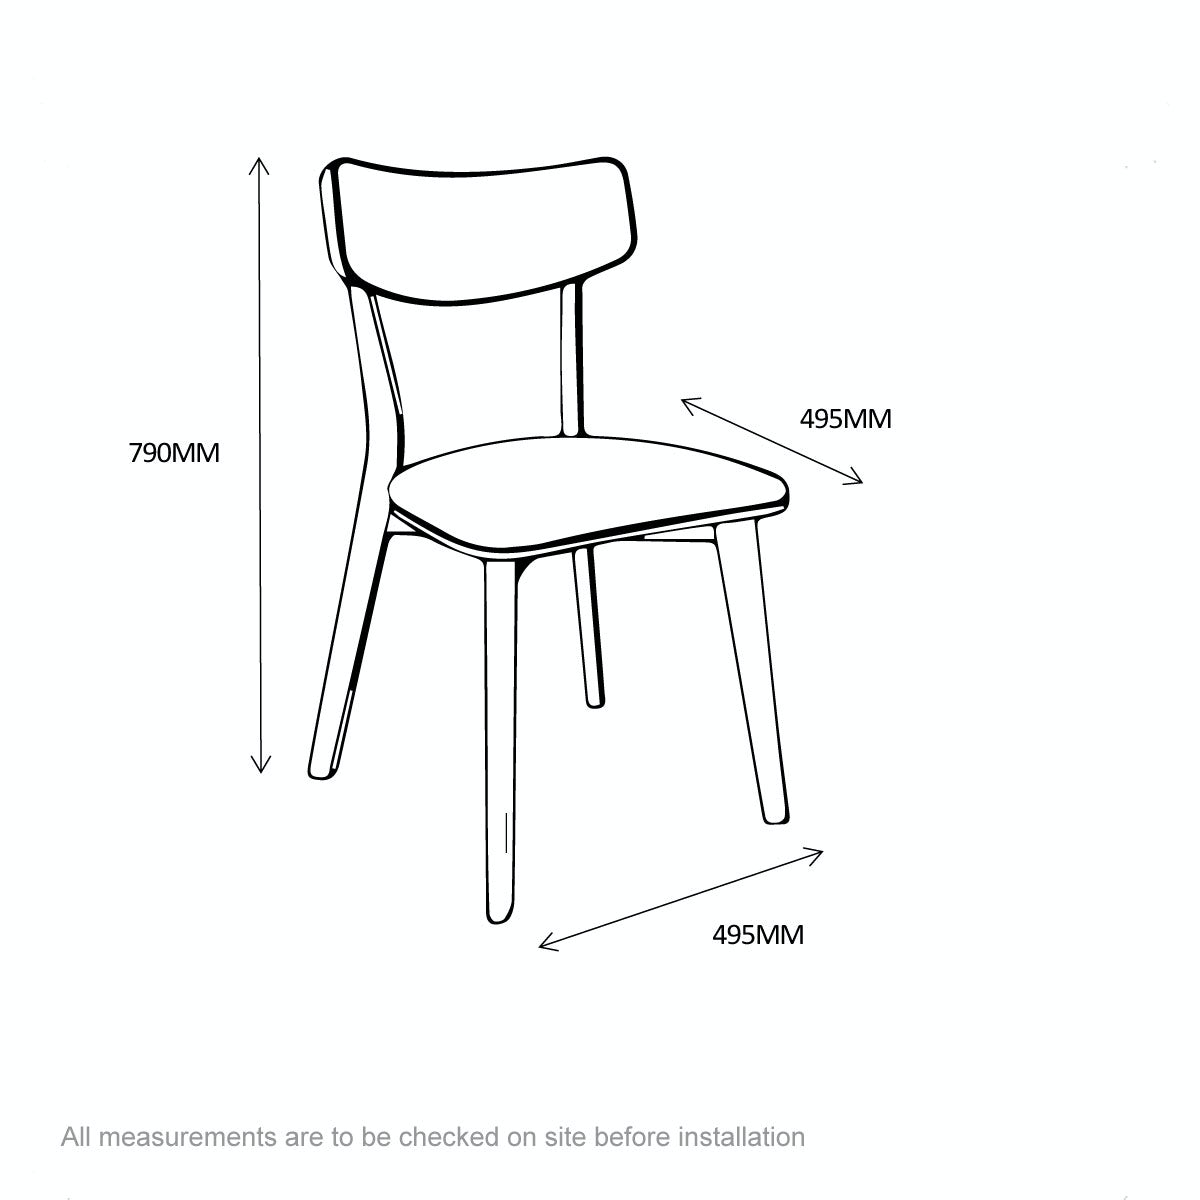 Dimensions for Ernest walnut and beige pair of dining chairs